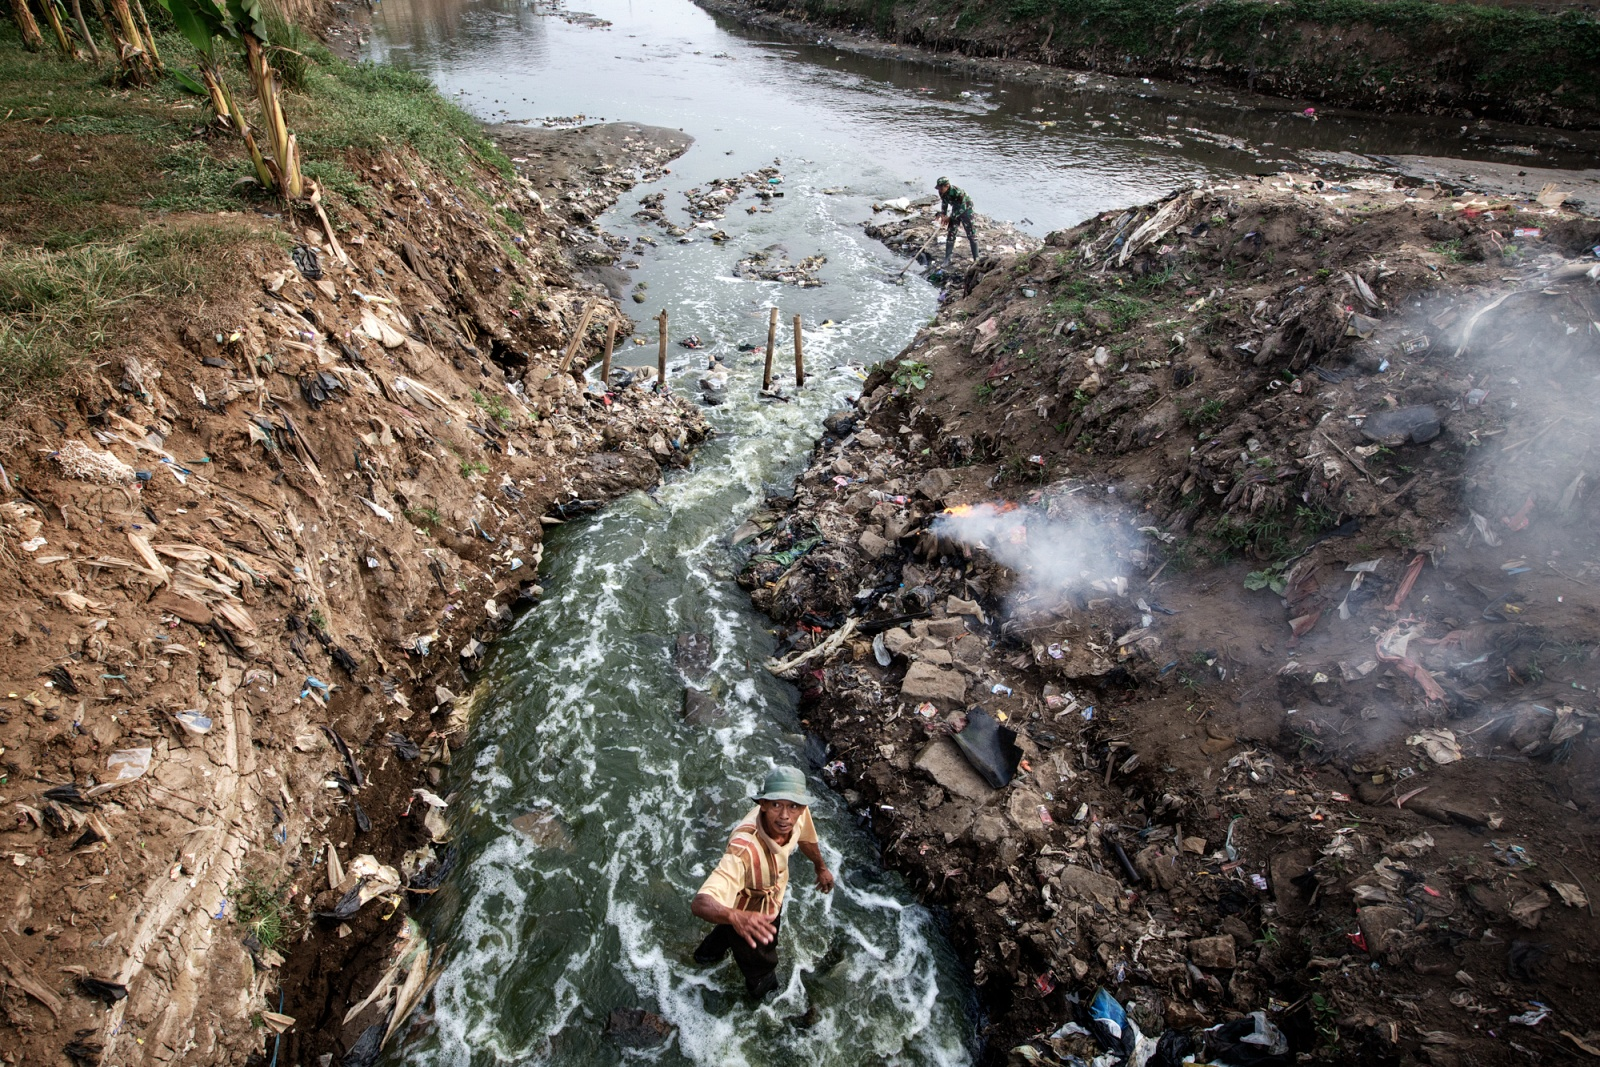 Bojongsoang village, Bandung Regency, West Jawa, Indonesia, 2019